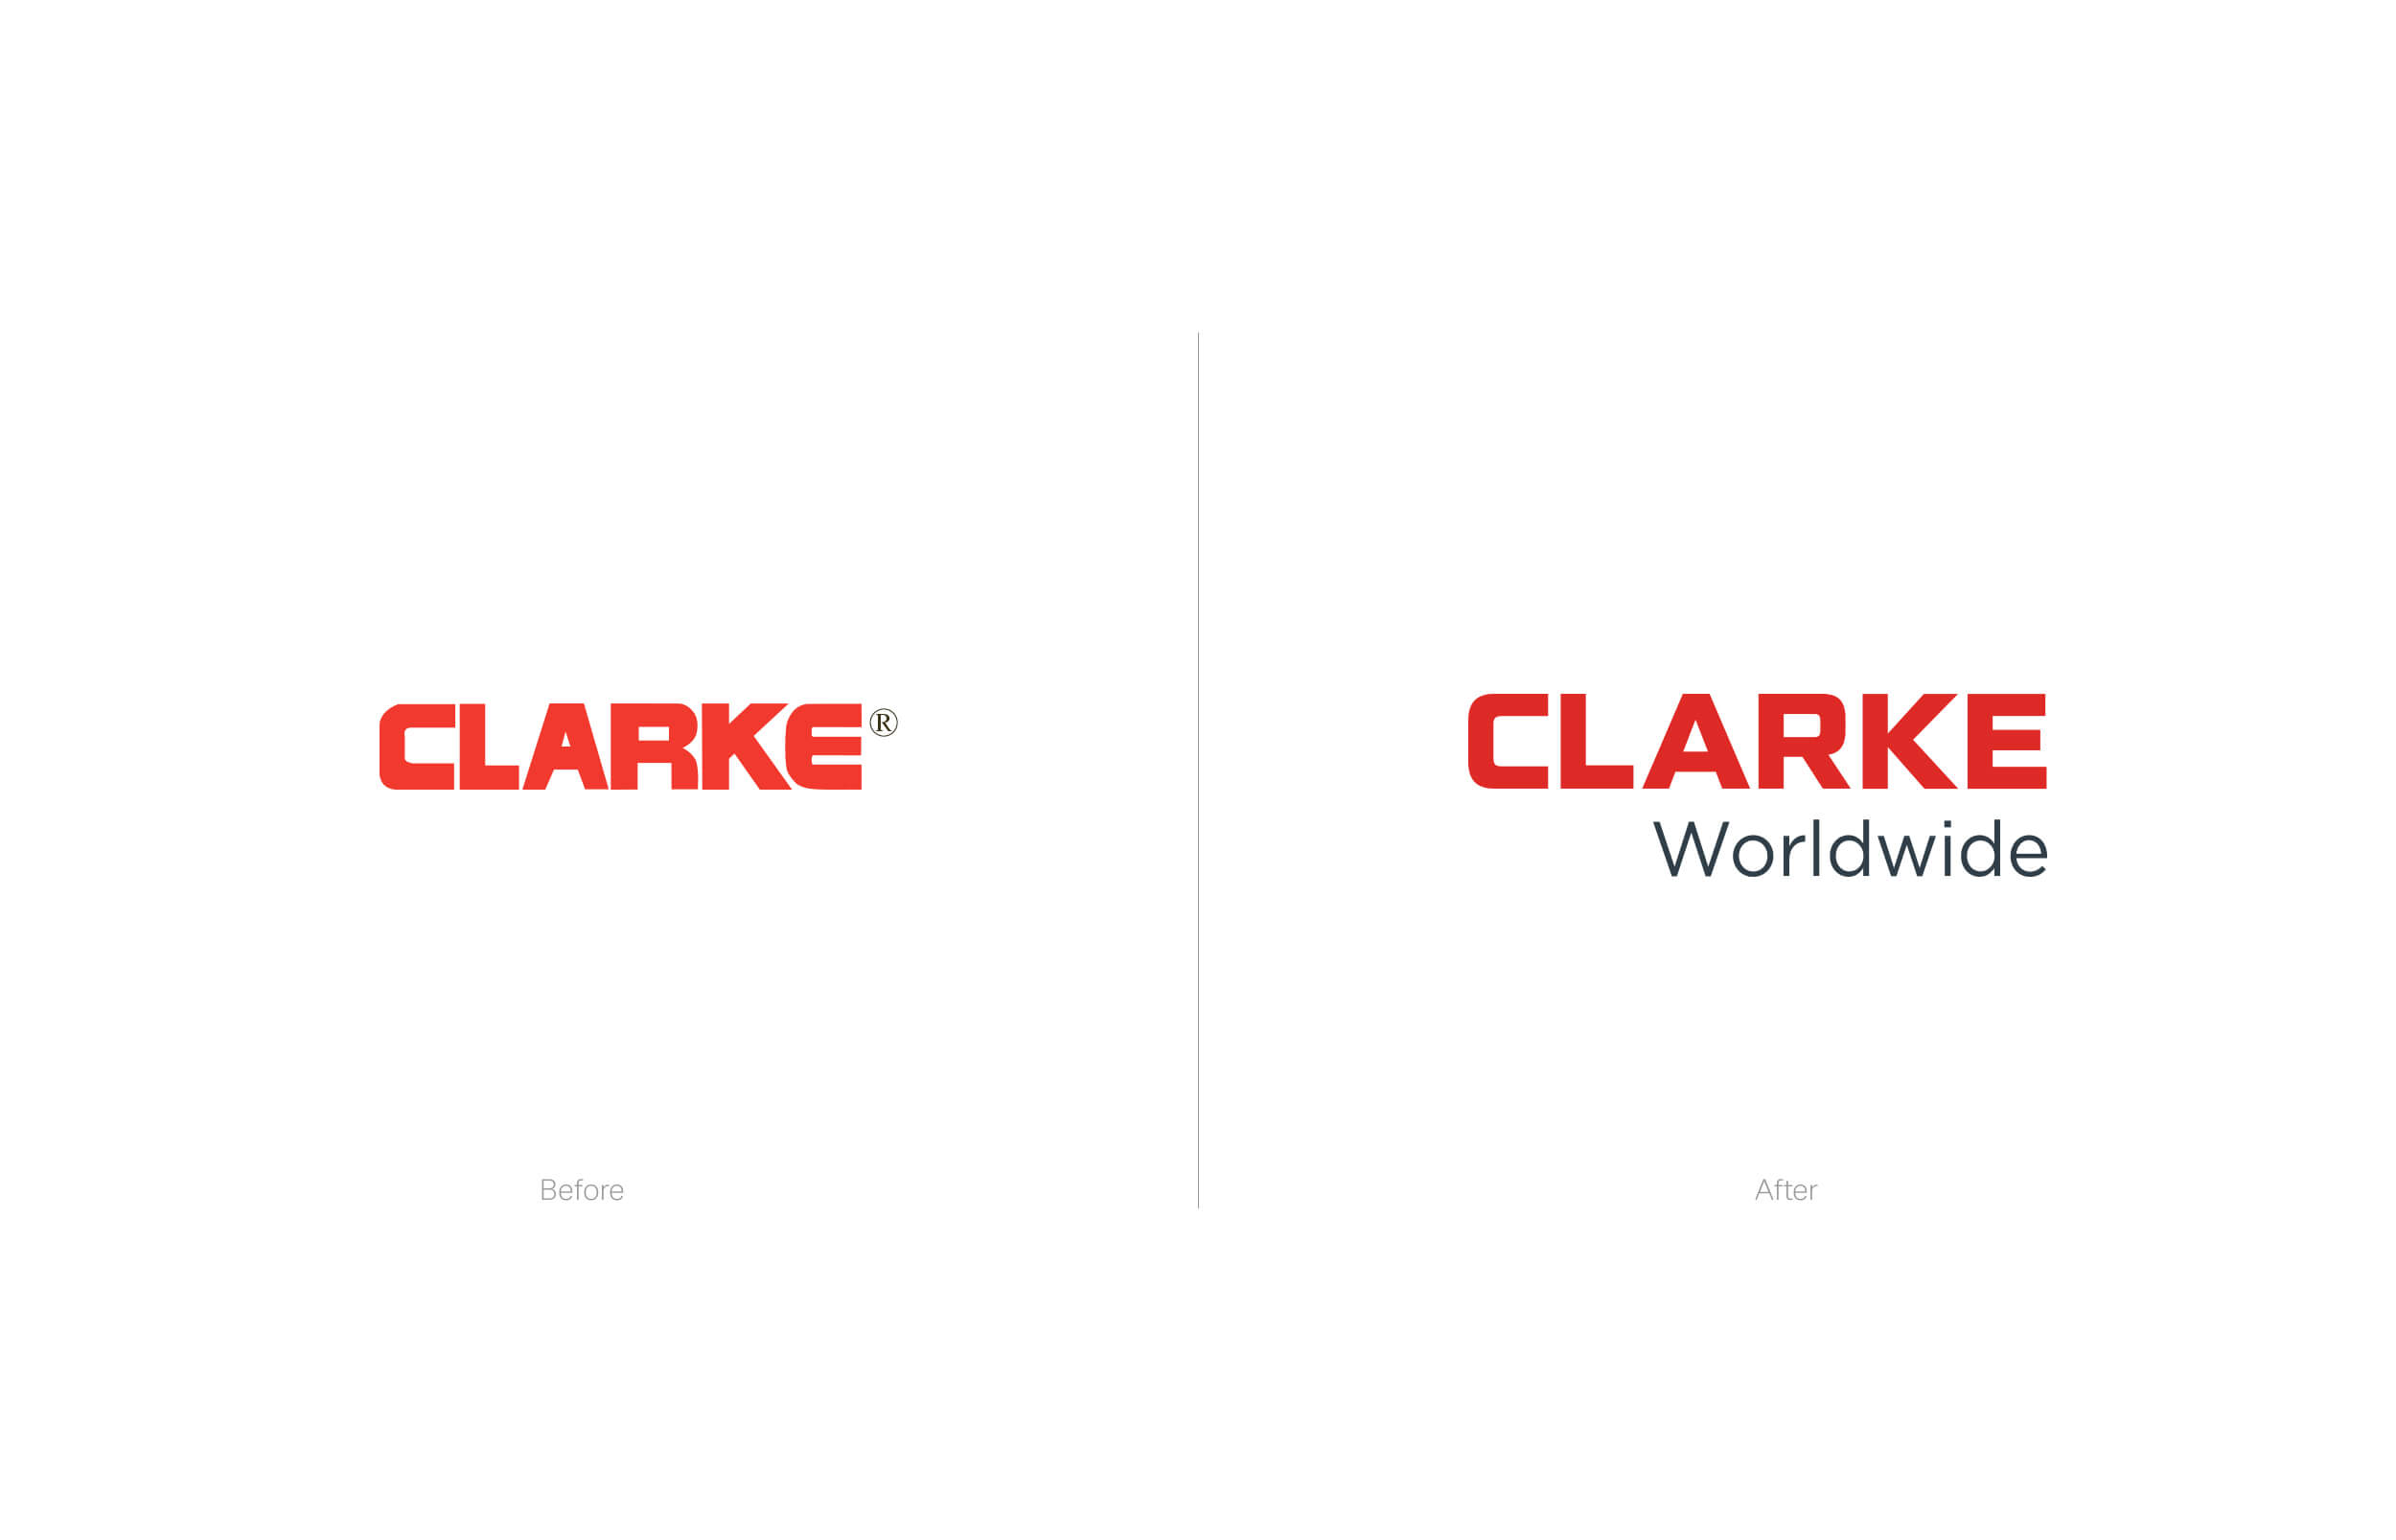 Clarke Worldwide Before and After